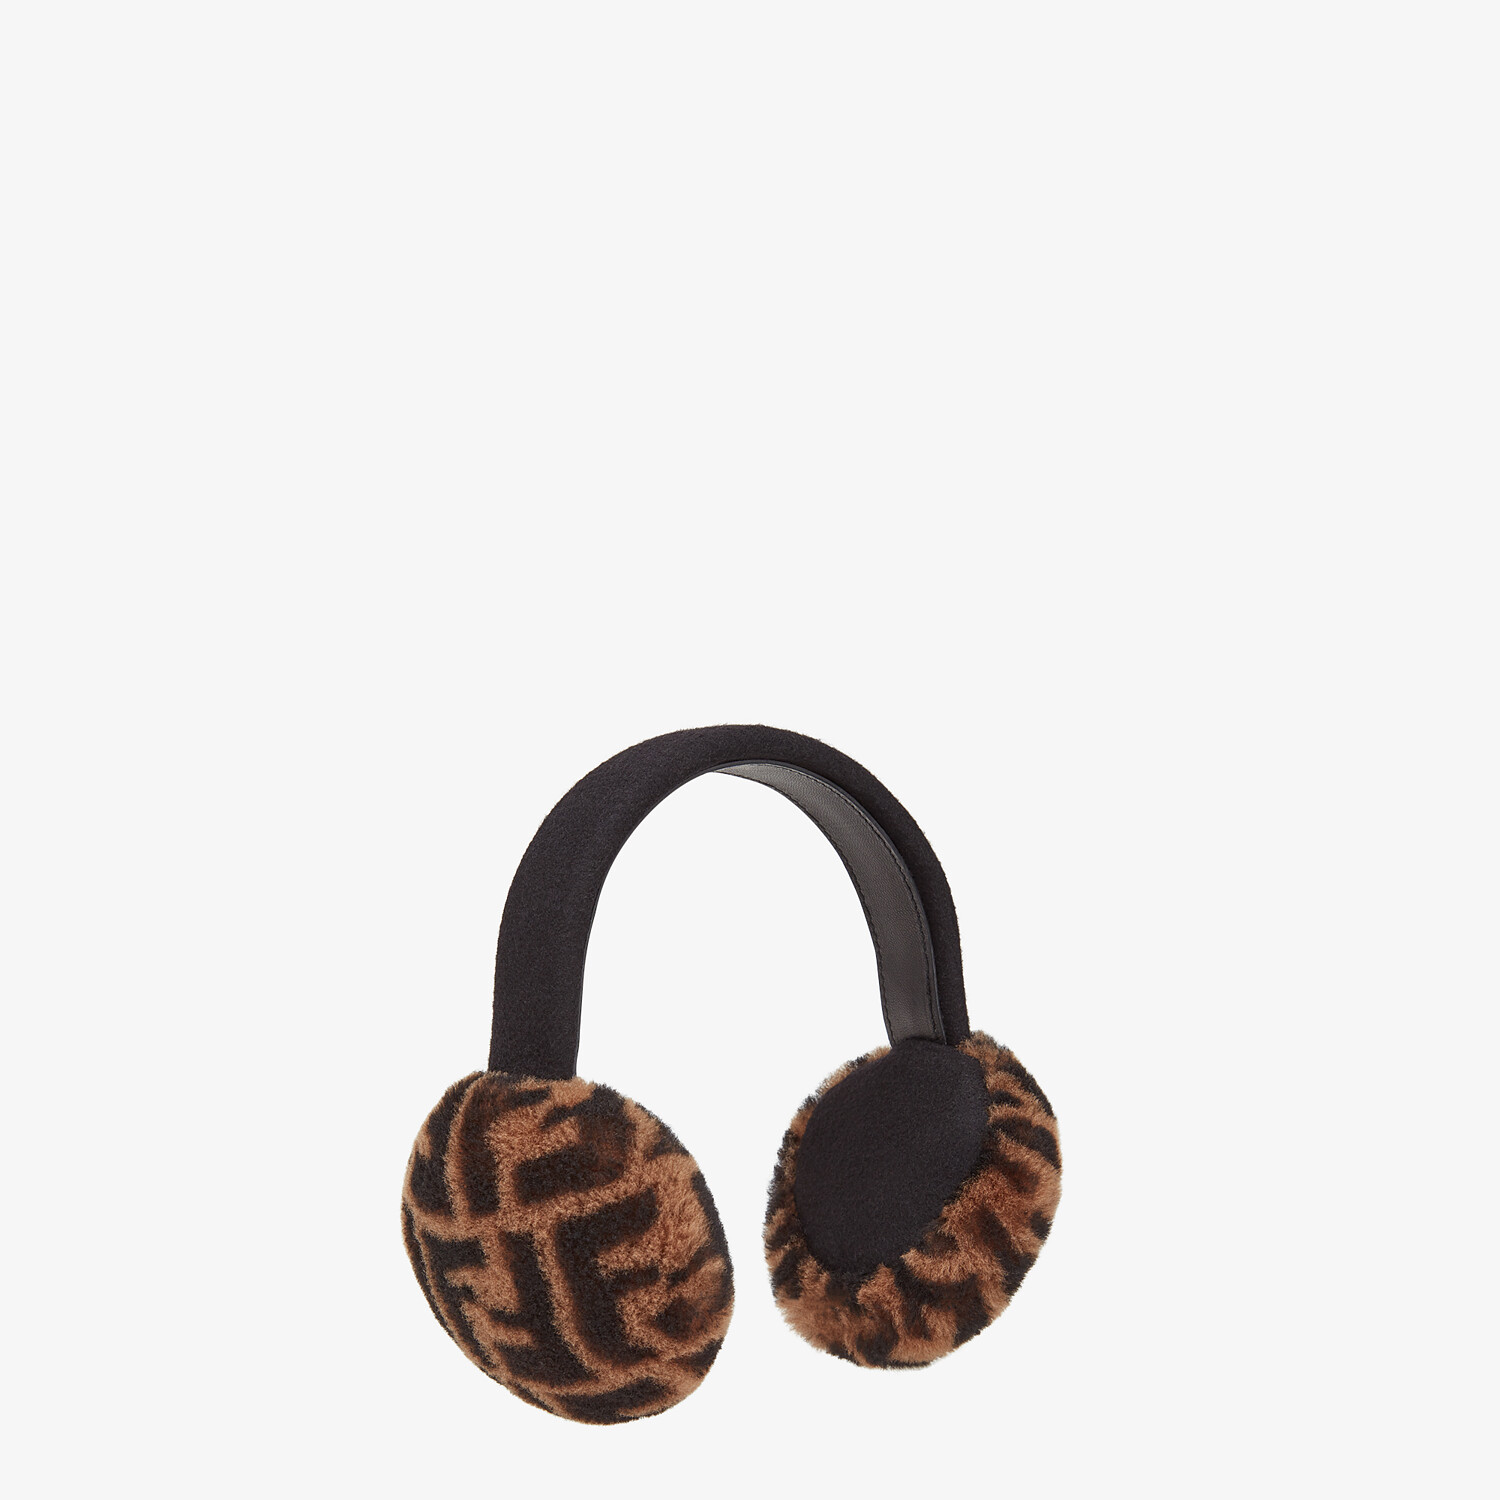 FENDI EARMUFFS - Brown shearling earmuffs - view 2 detail